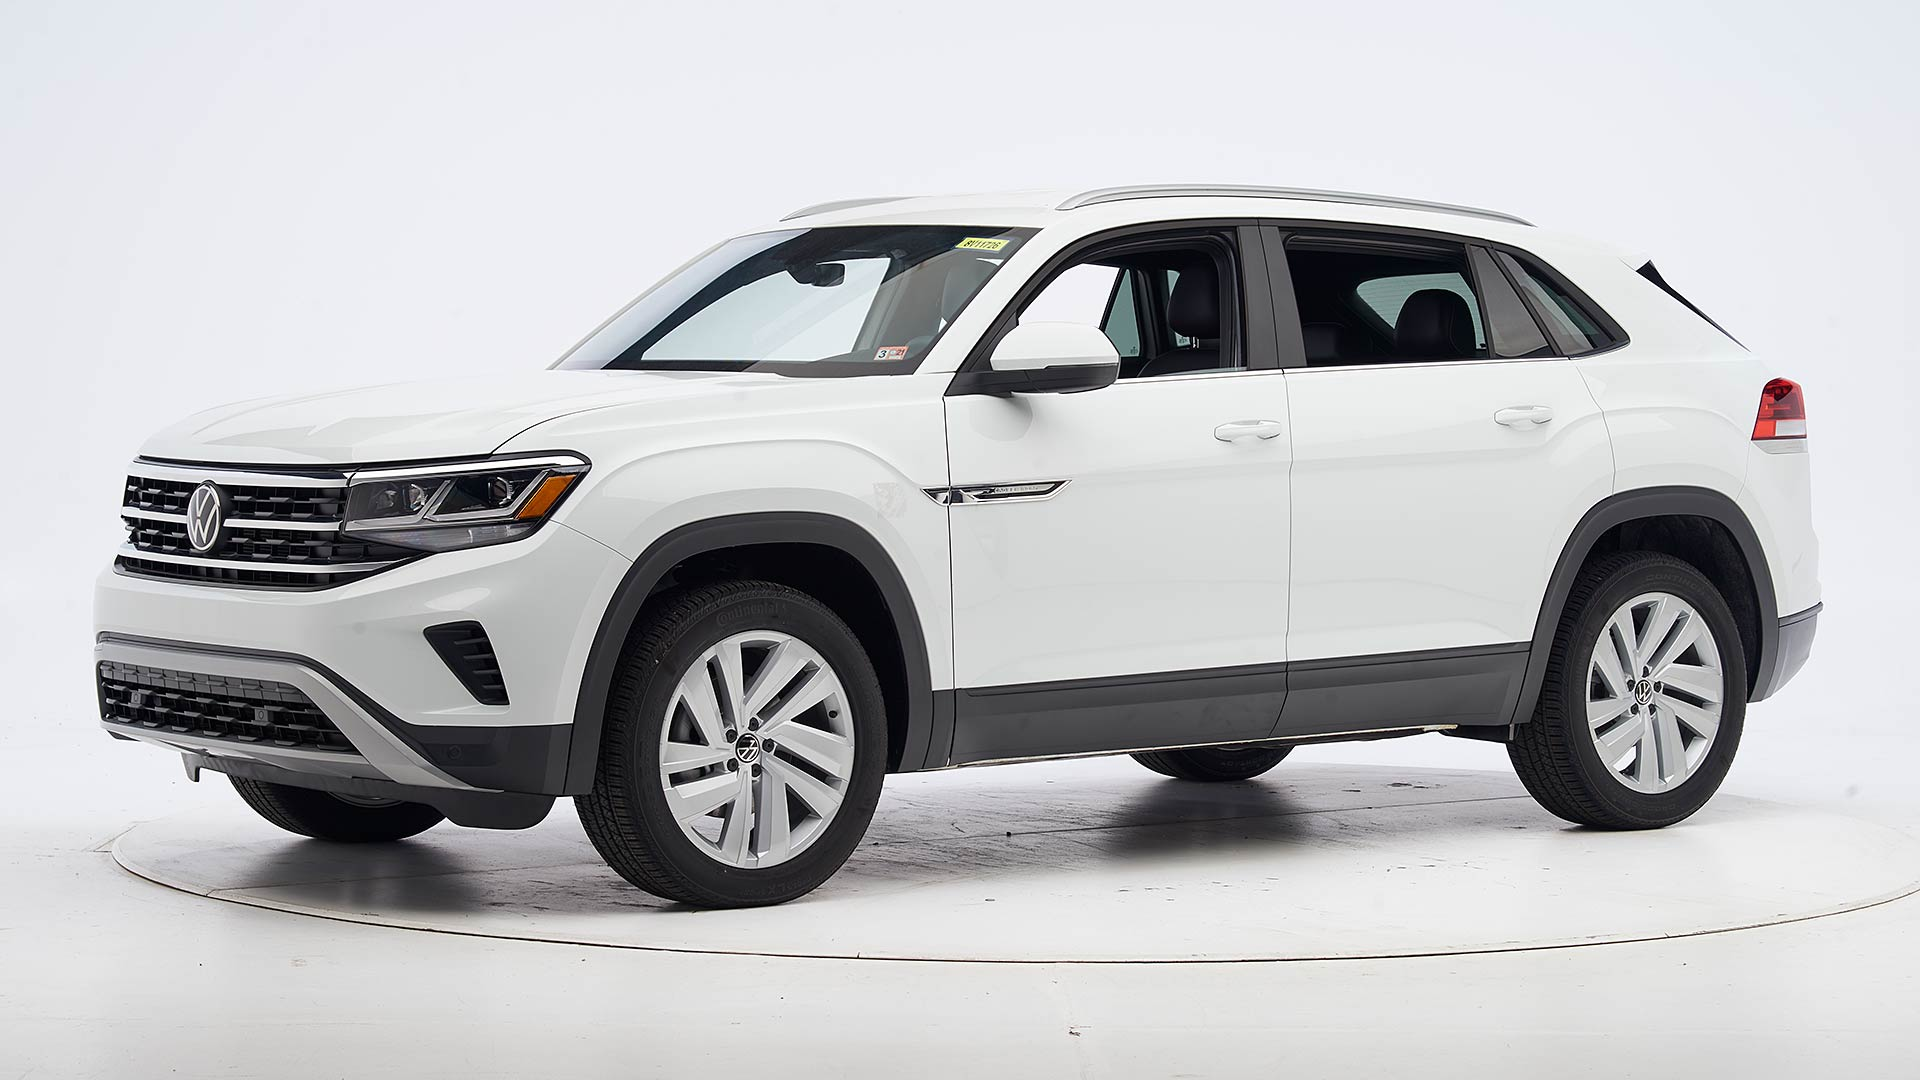 2021 Volkswagen Atlas Cross Sport 4-door SUV